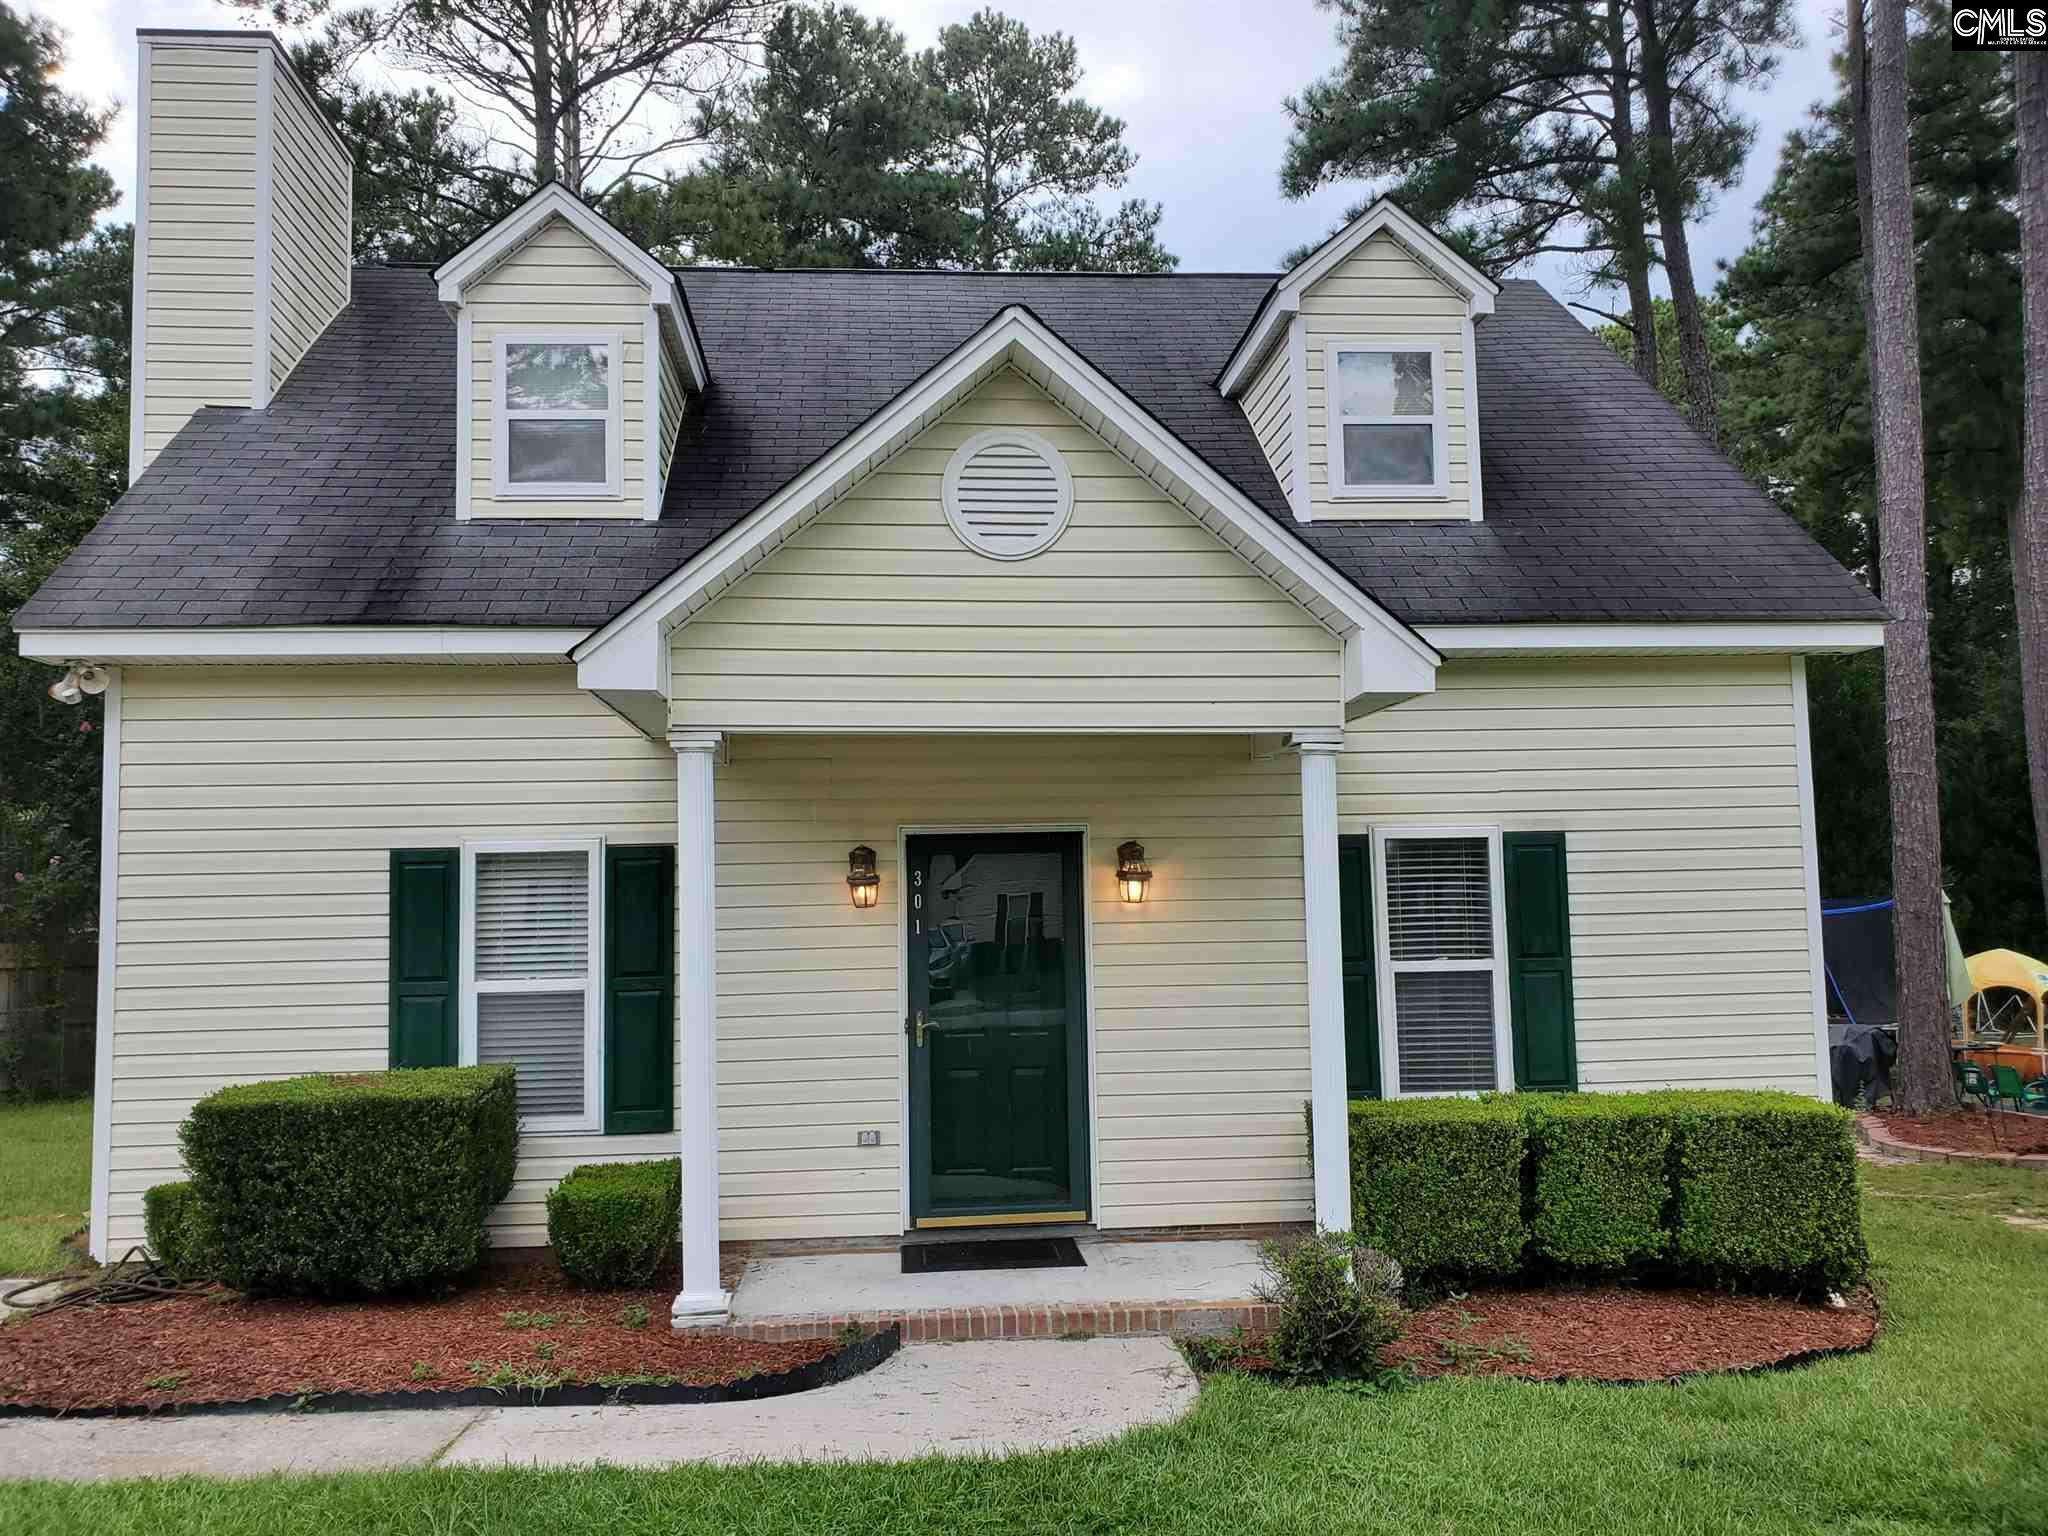 301 Squire Columbia, SC 29223-5448